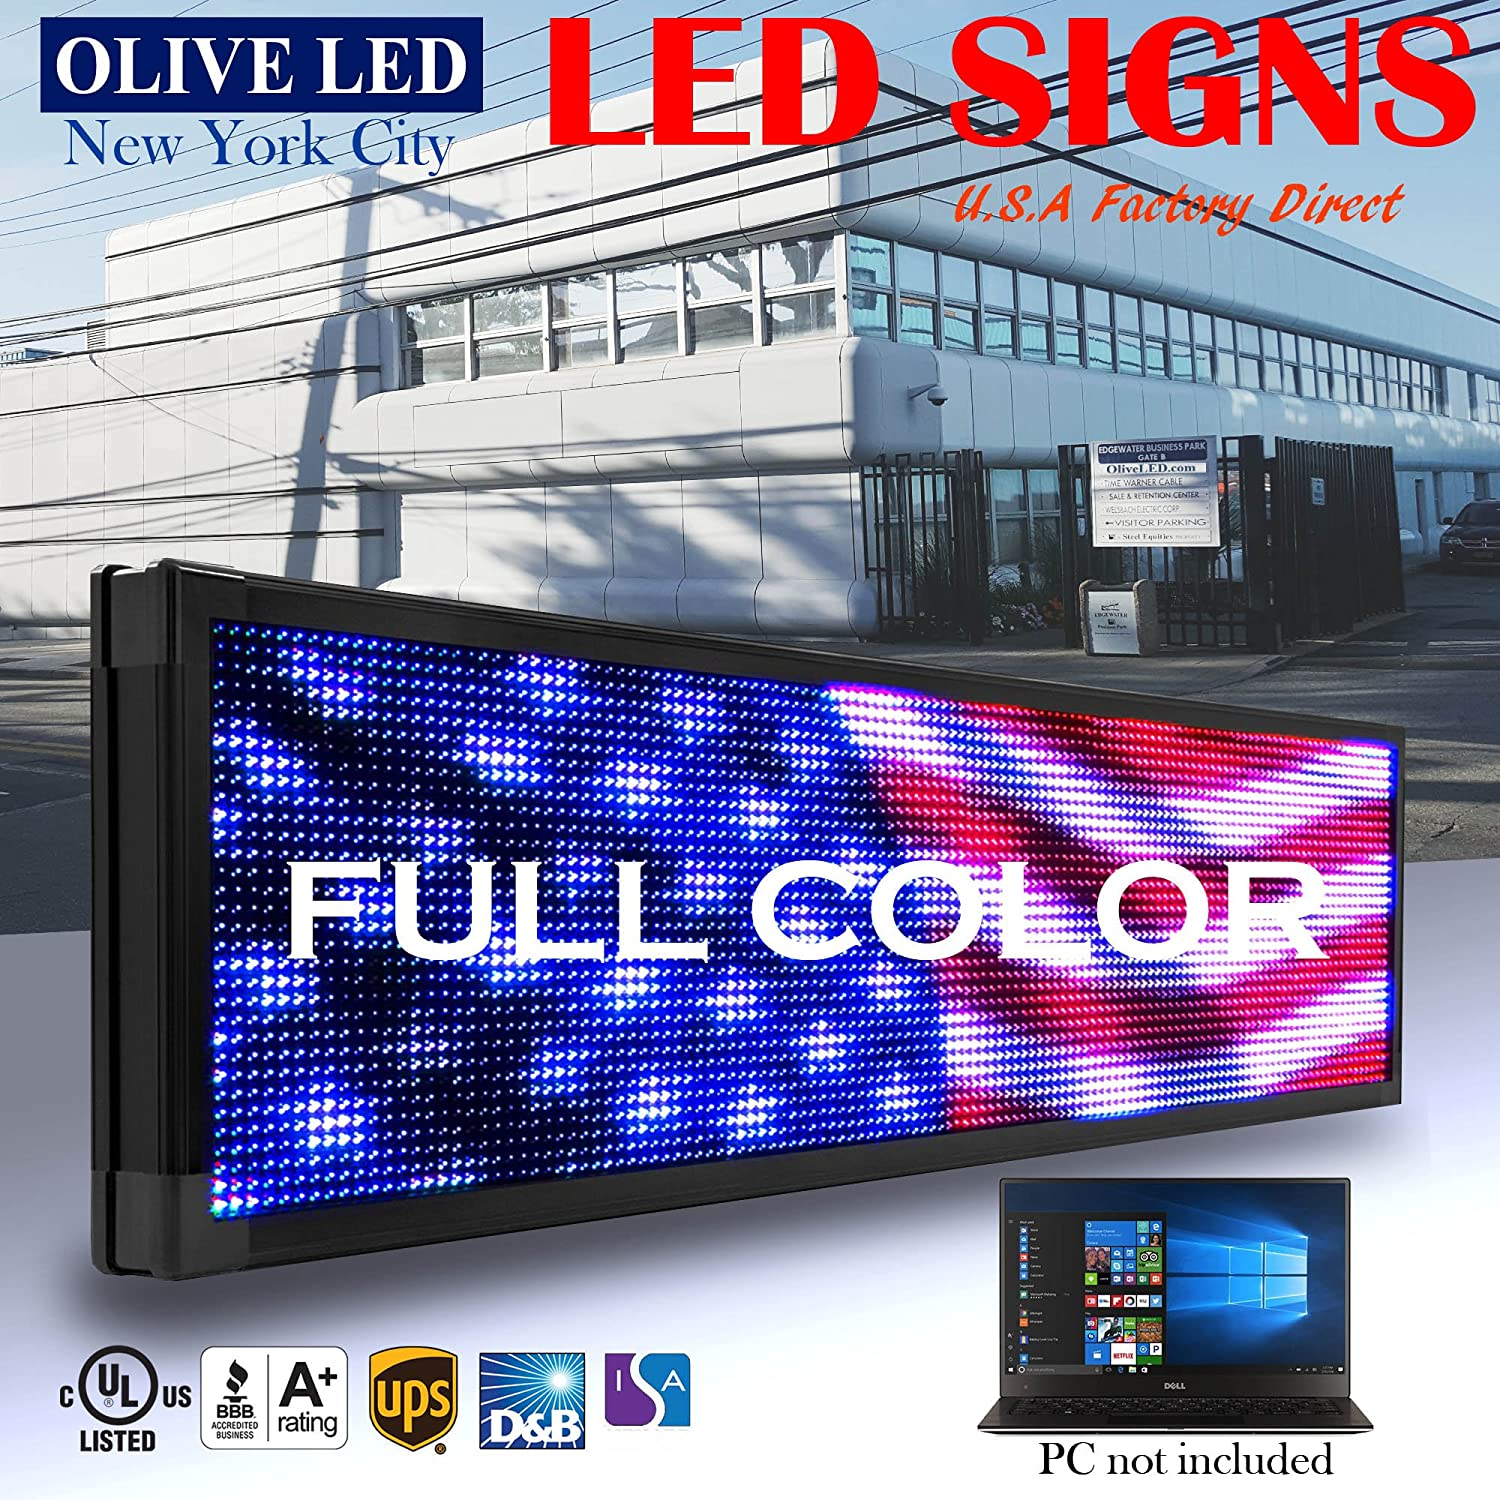 26H x 20W x 1D LED Cocktails /& Beer Sign for Business Displays Rectangle Electronic Light Up Sign for Bars Restaurants